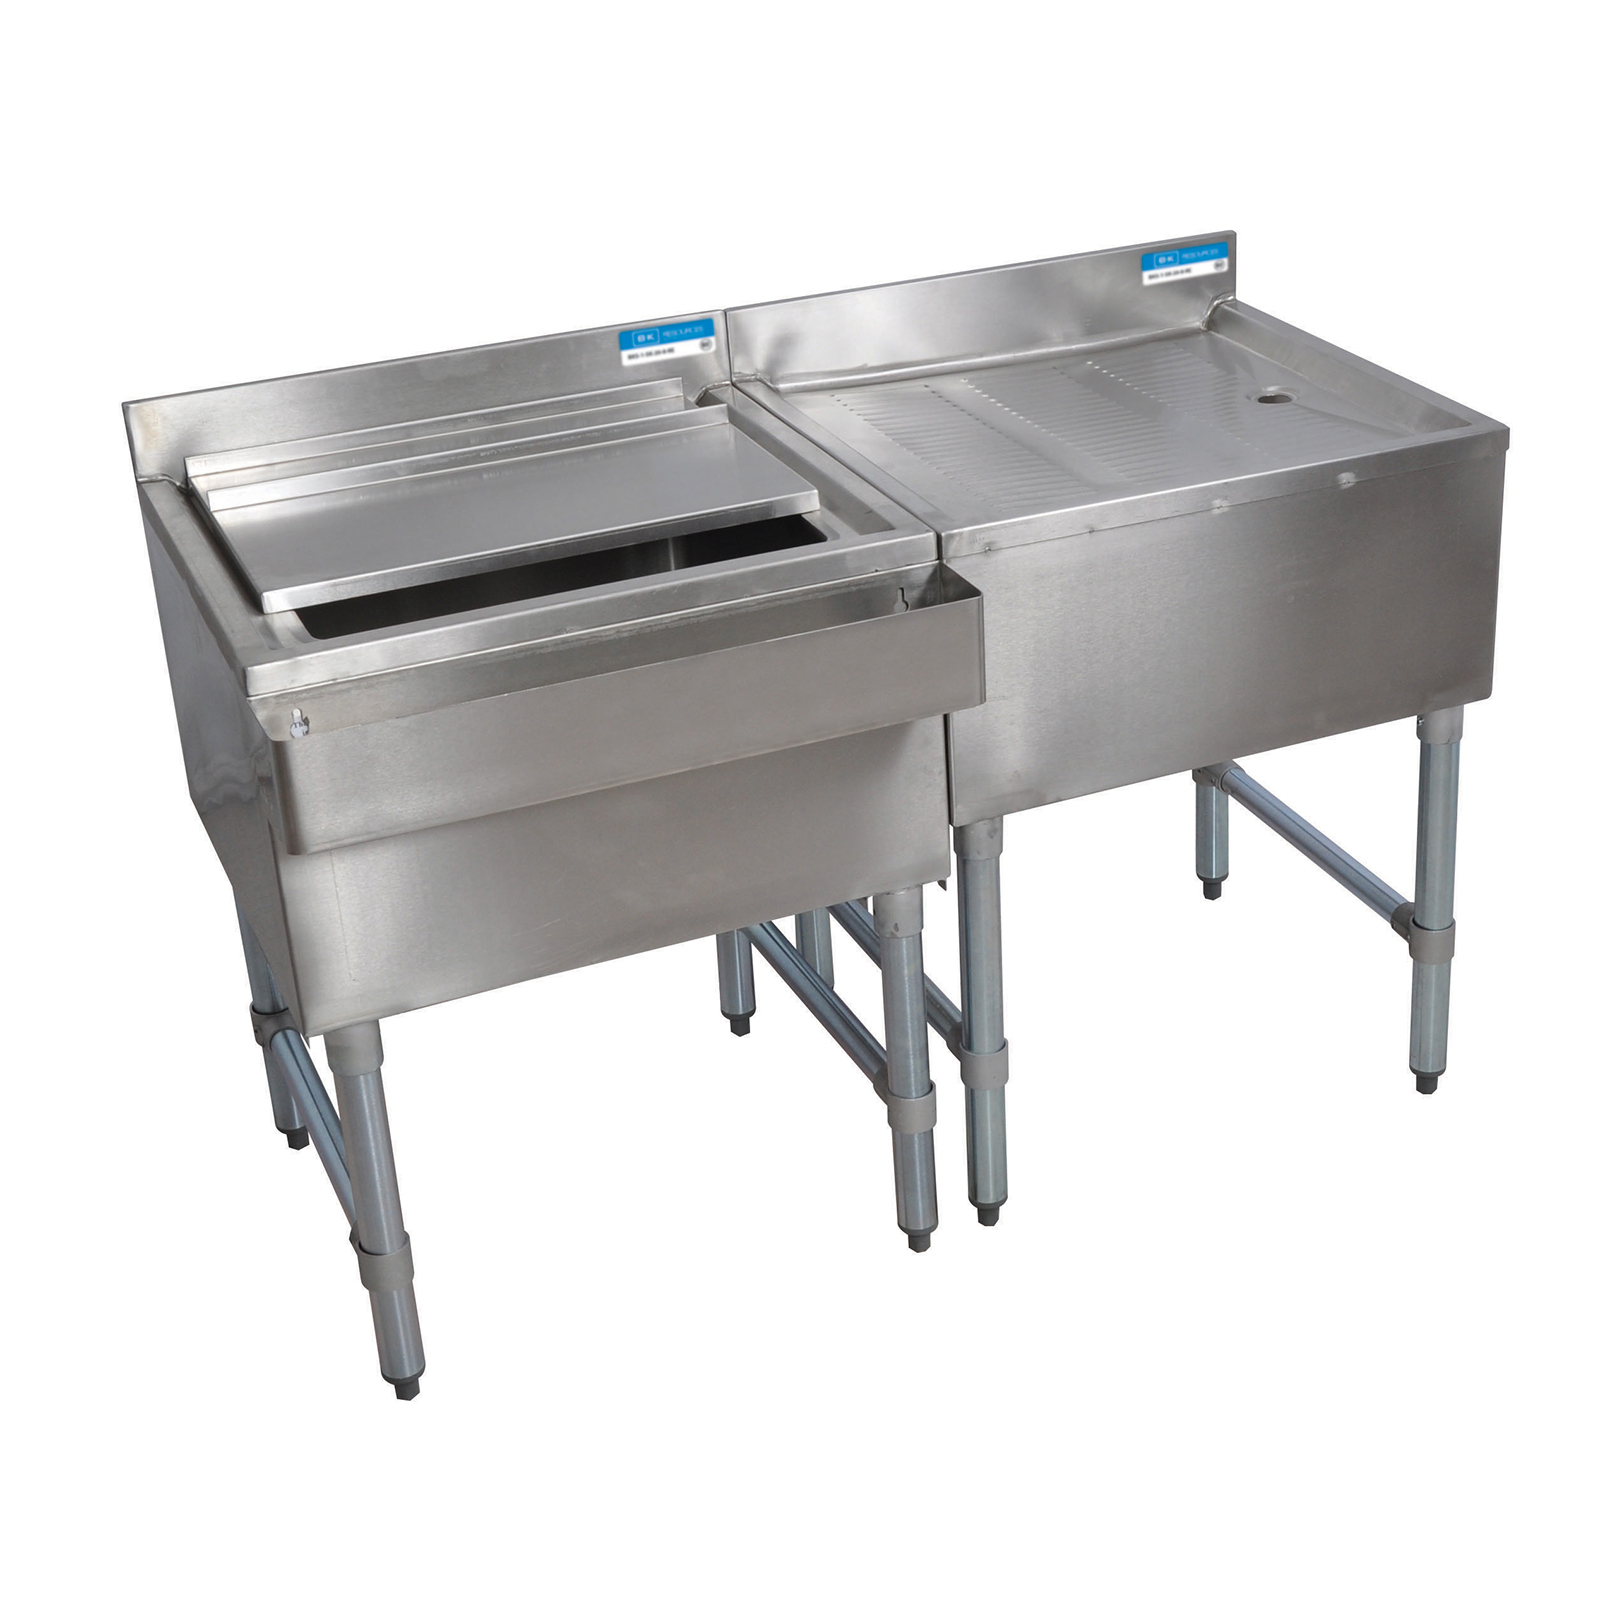 BK Resources BKUB-WS-IBDB-72S underbar ice bin/cocktail station, drainboard